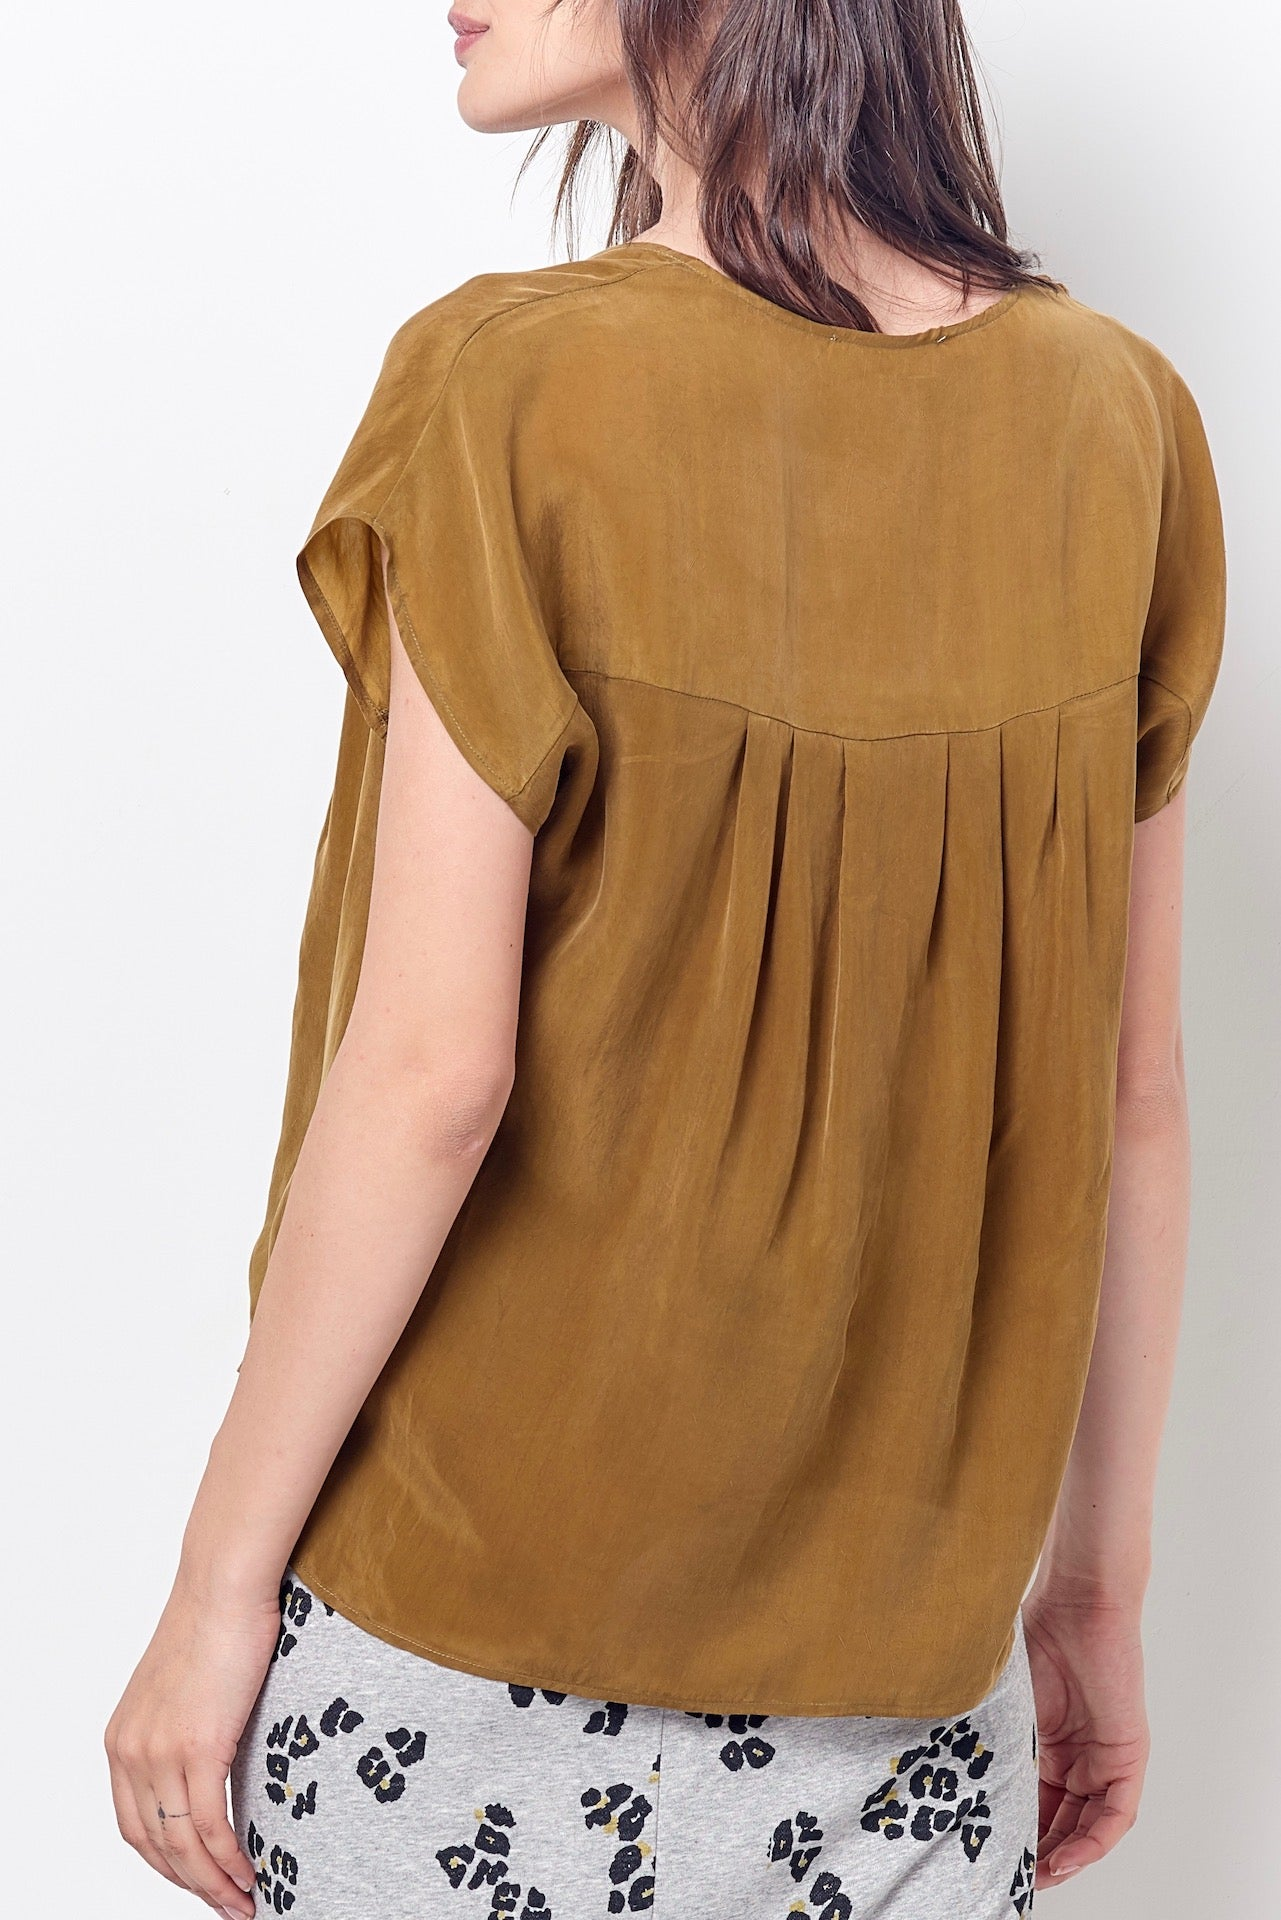 EVIE V-neck Top w/Ruffle